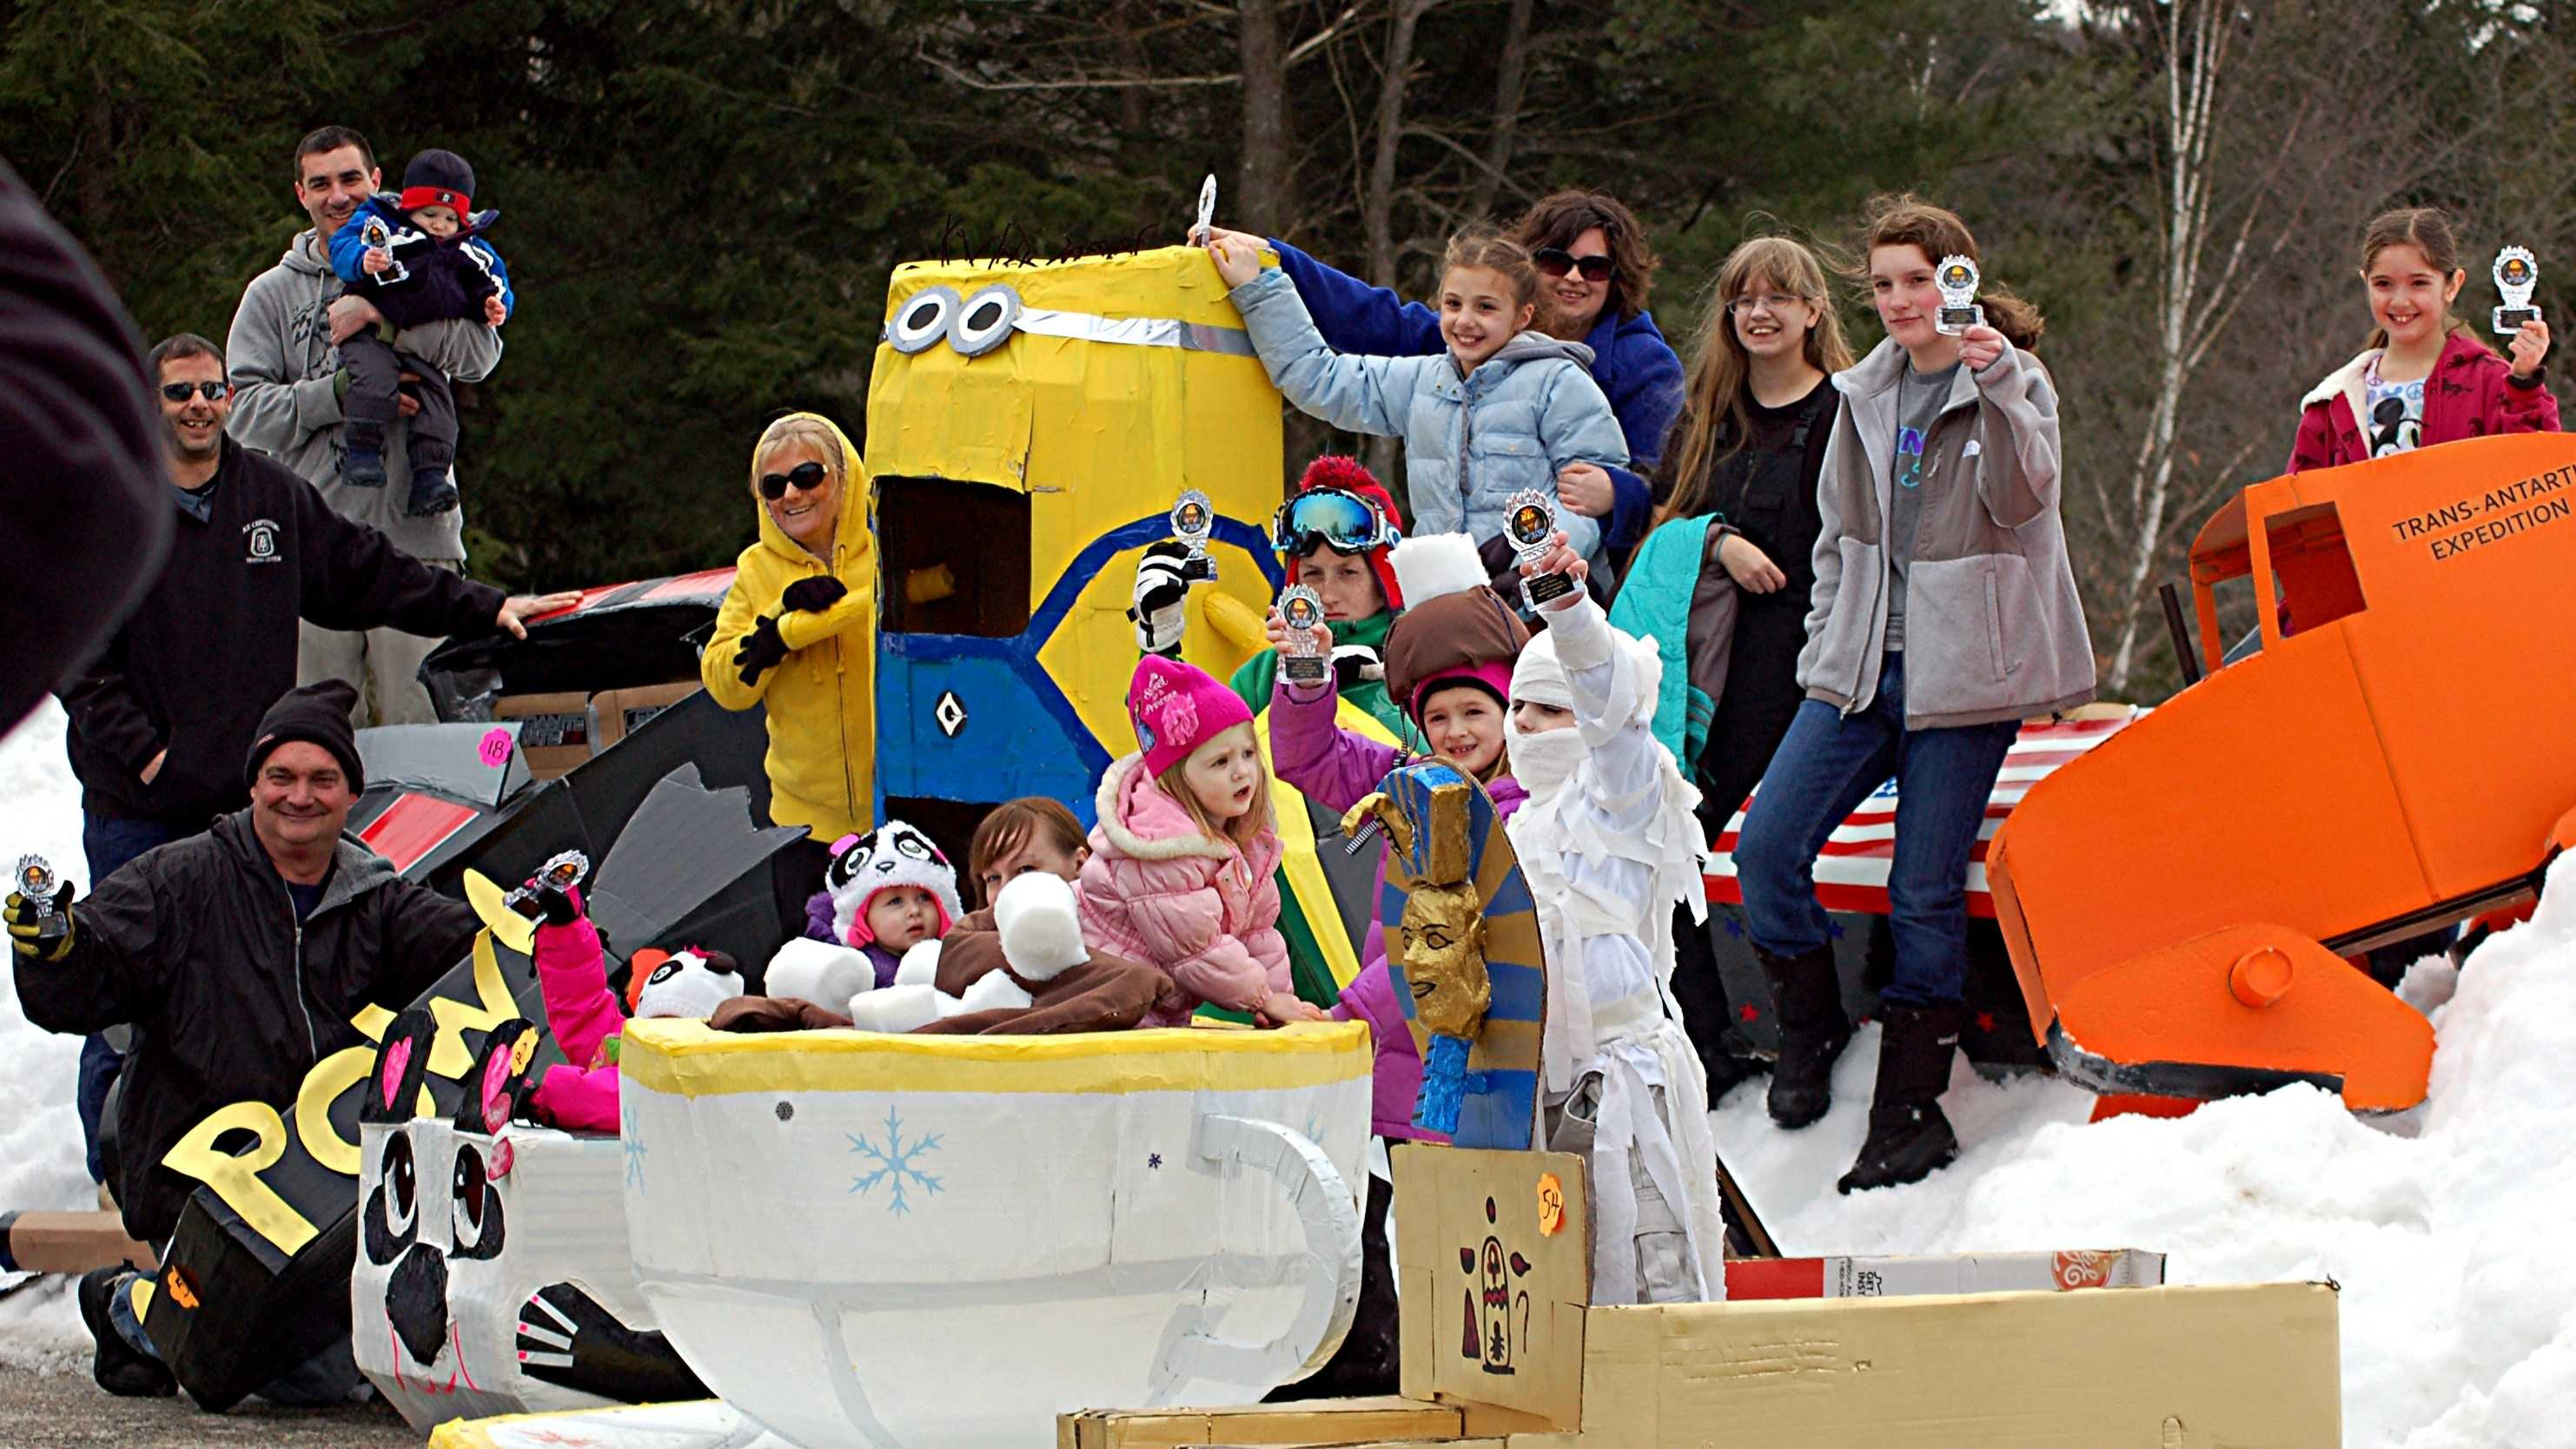 A committee aiming to raise money for an amphitheater reached its goal Sunday during a cardboard sled race fundraiser.